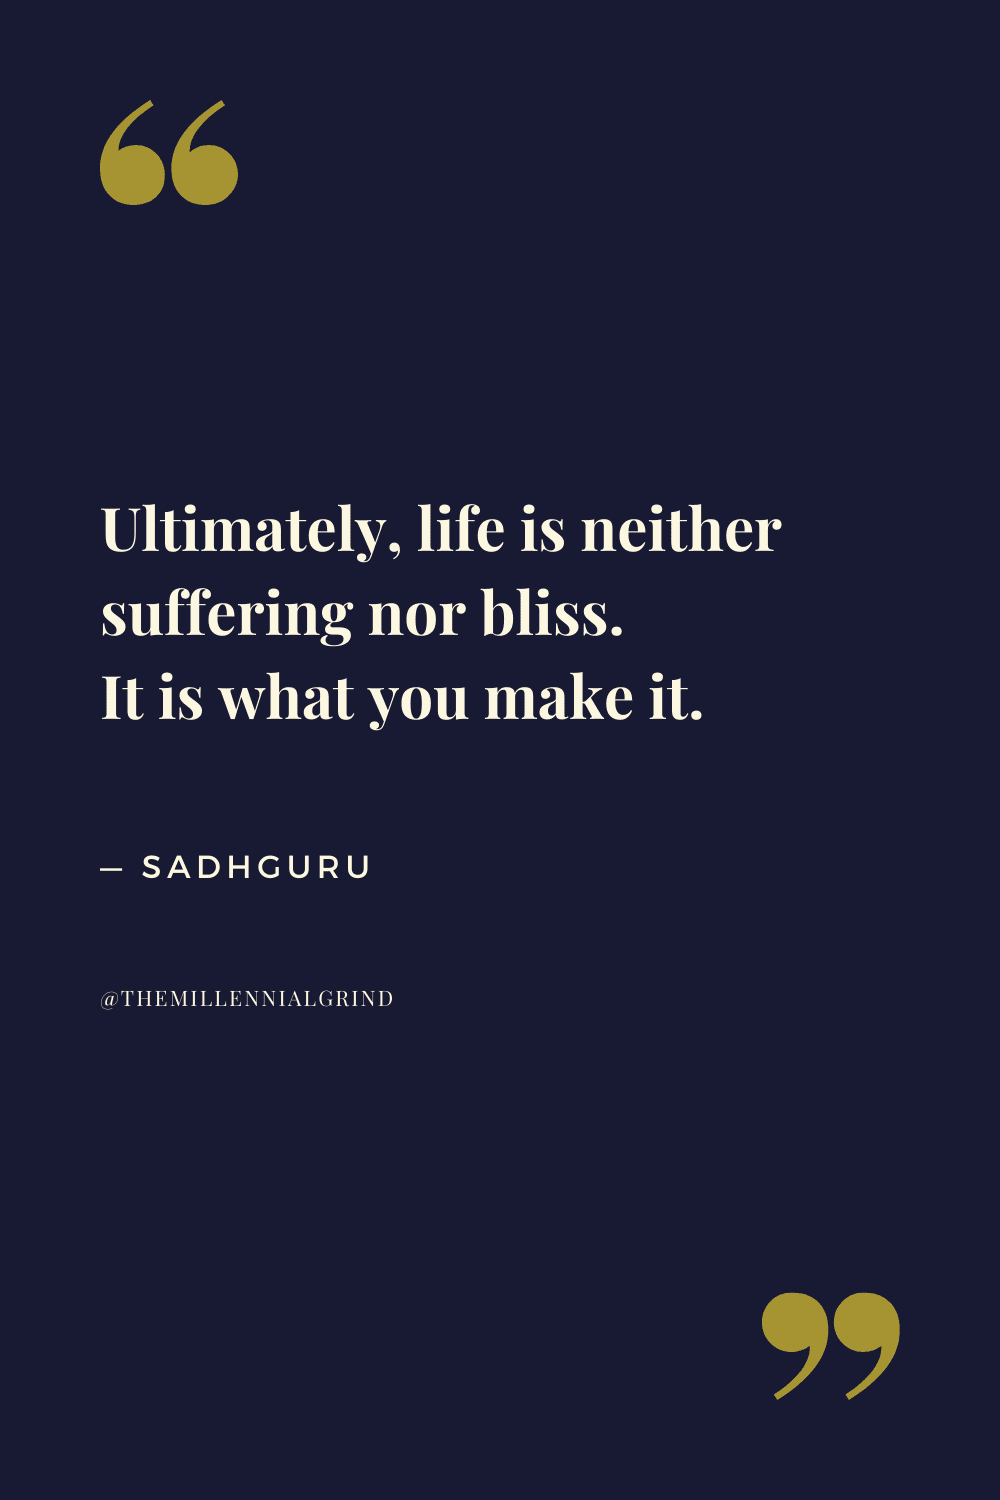 Ultimately, life is neither suffering nor bliss. It is what you make it.